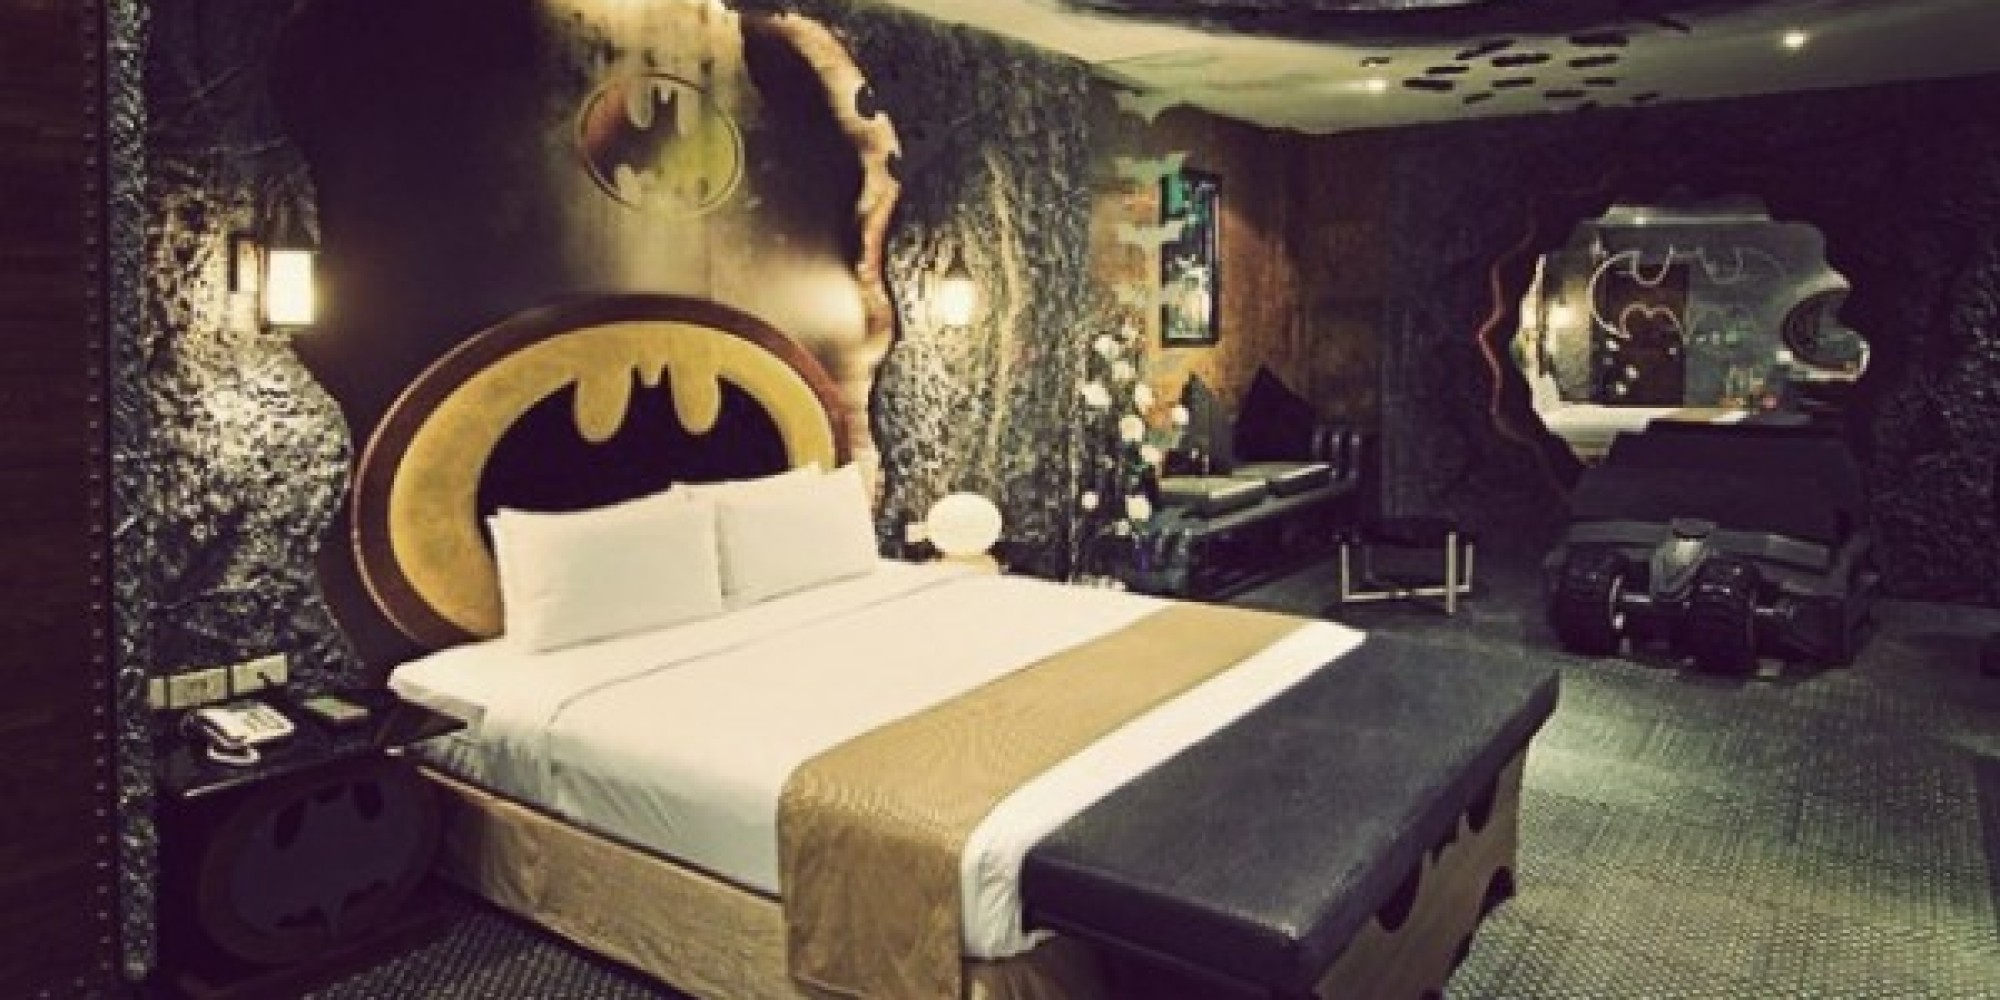 batman hotel room in taiwan is all you need for a good 'knight's